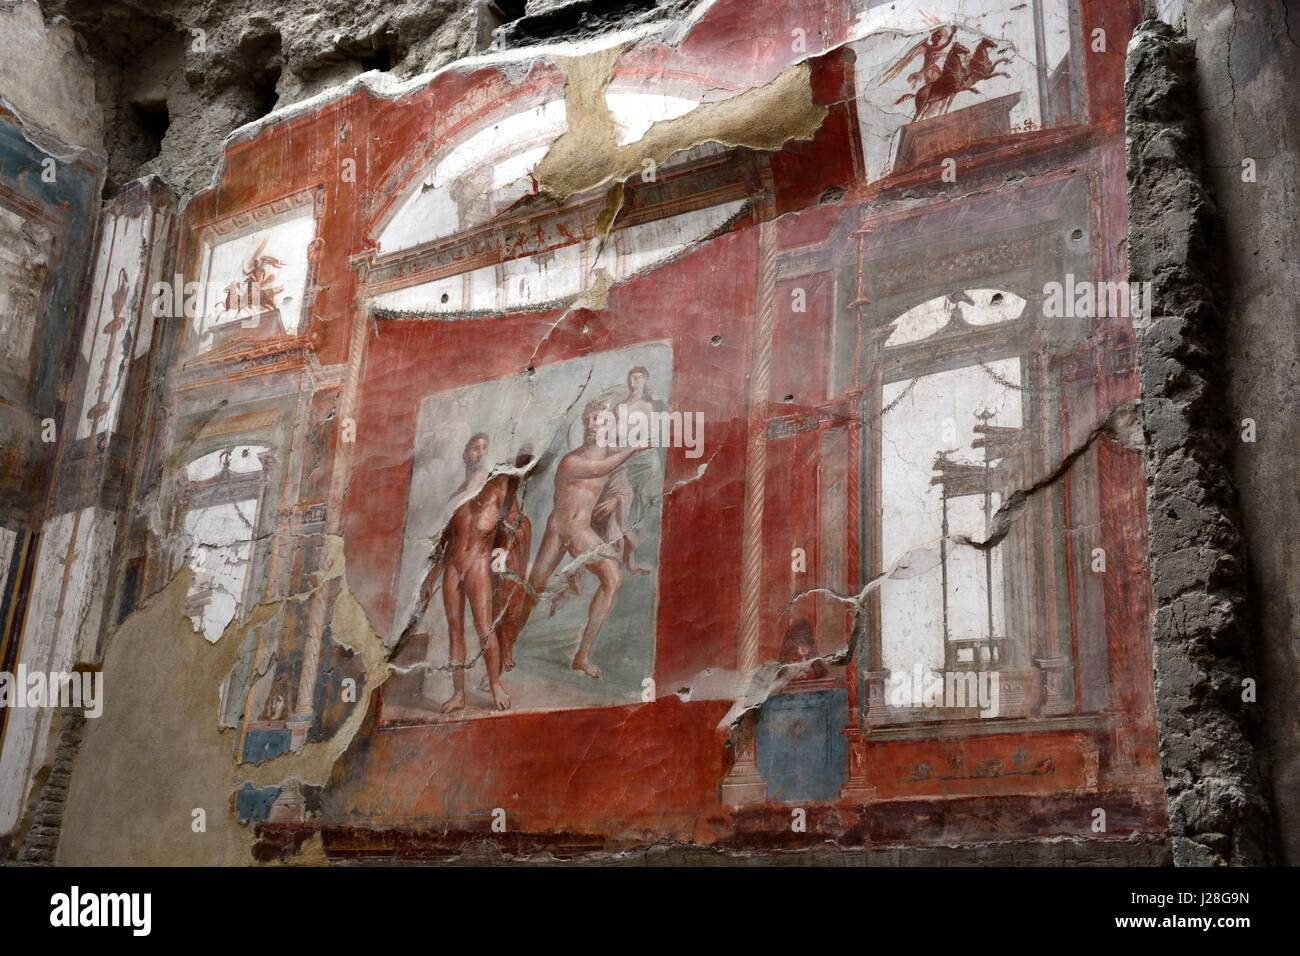 ancient roman walls stock photos ancient roman walls stock frescoes fresco on the walls of college of the augustales herculaneum ancient roman city destroyed by